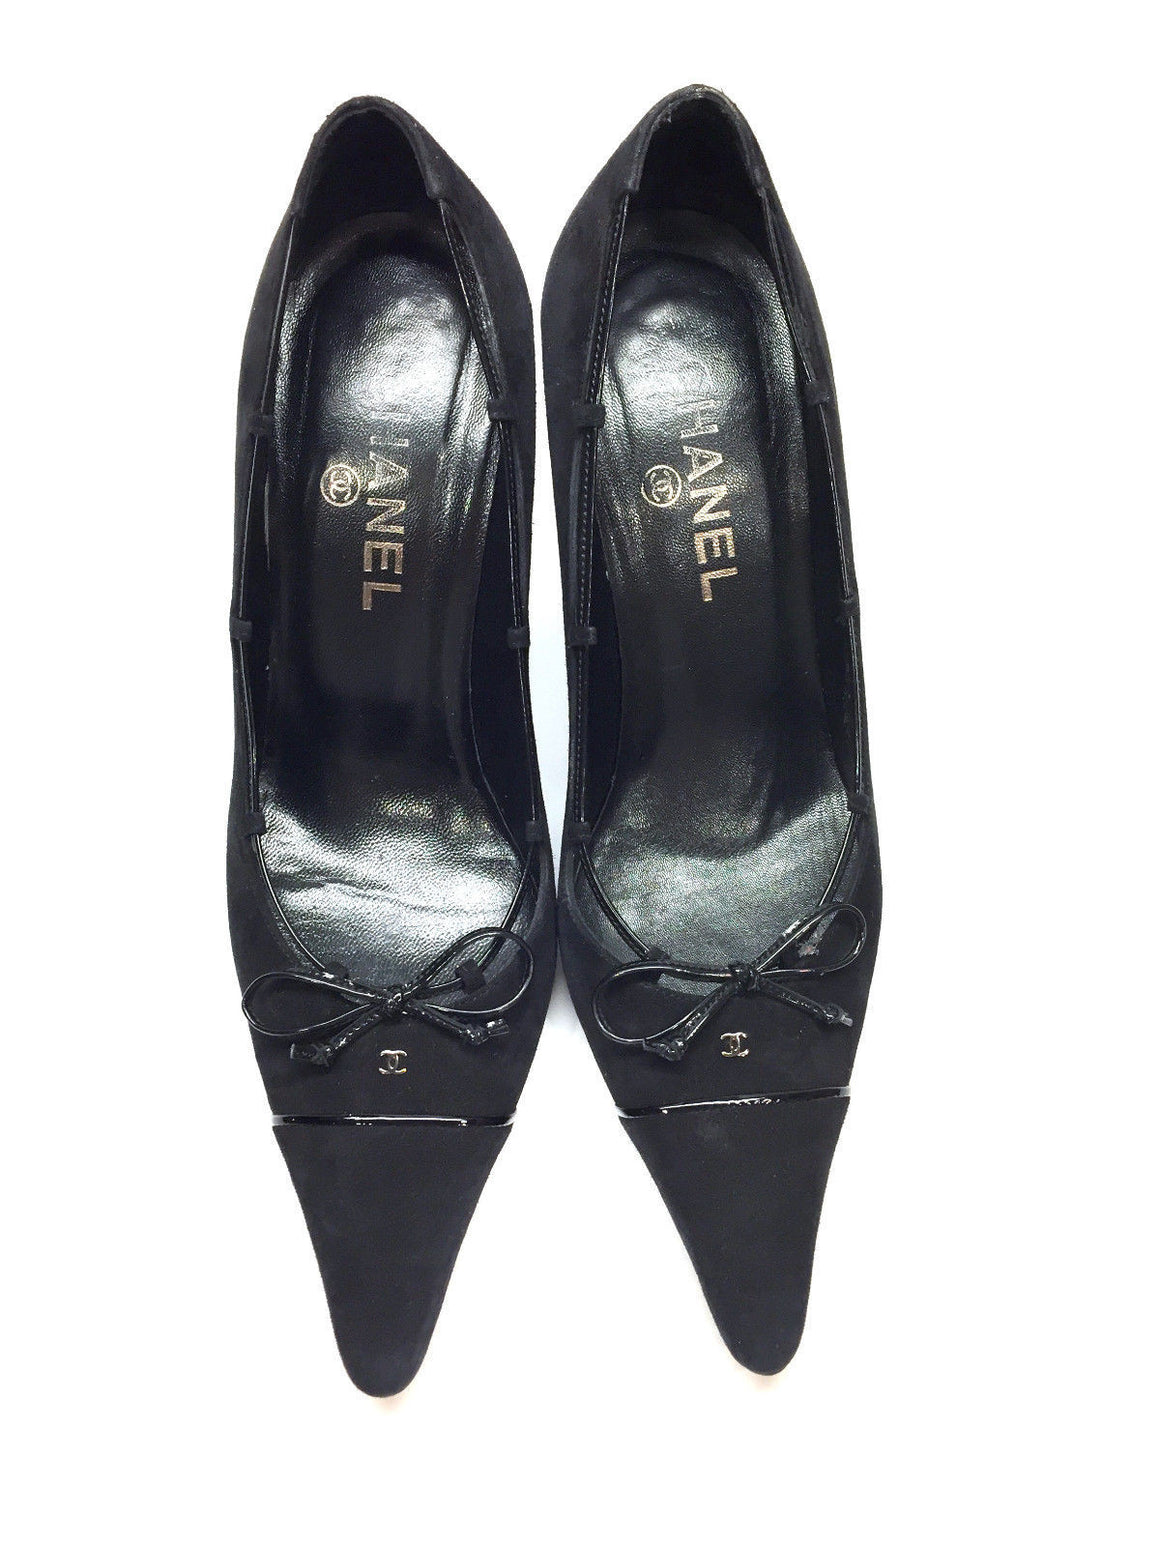 bisbiz.com CHANEL  Black Suede Patent Leather Bow Heel Pumps Shoes  Size: 37.5 / 7.5 - Bis Luxury Resale